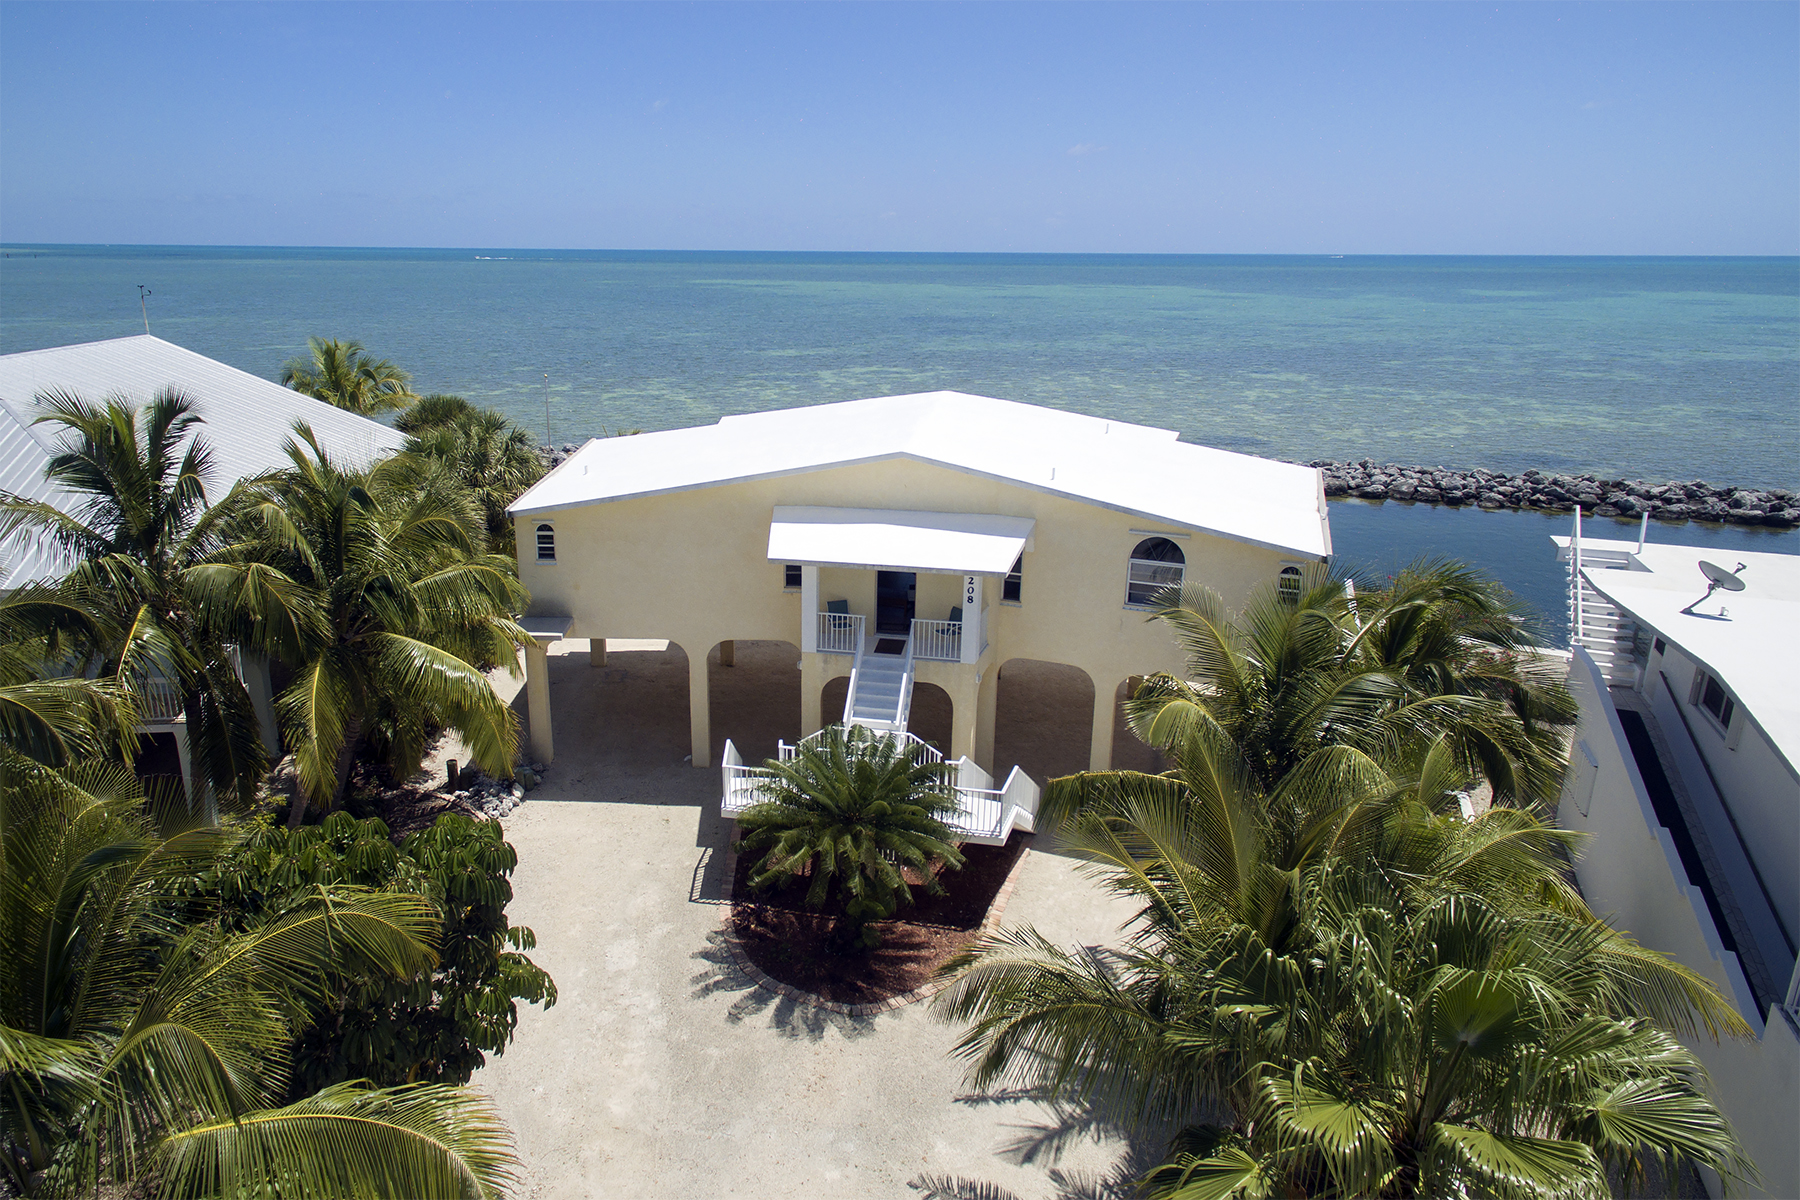 Single Family Home for Sale at Sweeping Ocean Views 208 Plantation Shores Drive Plantation Key, Florida, 33070 United States